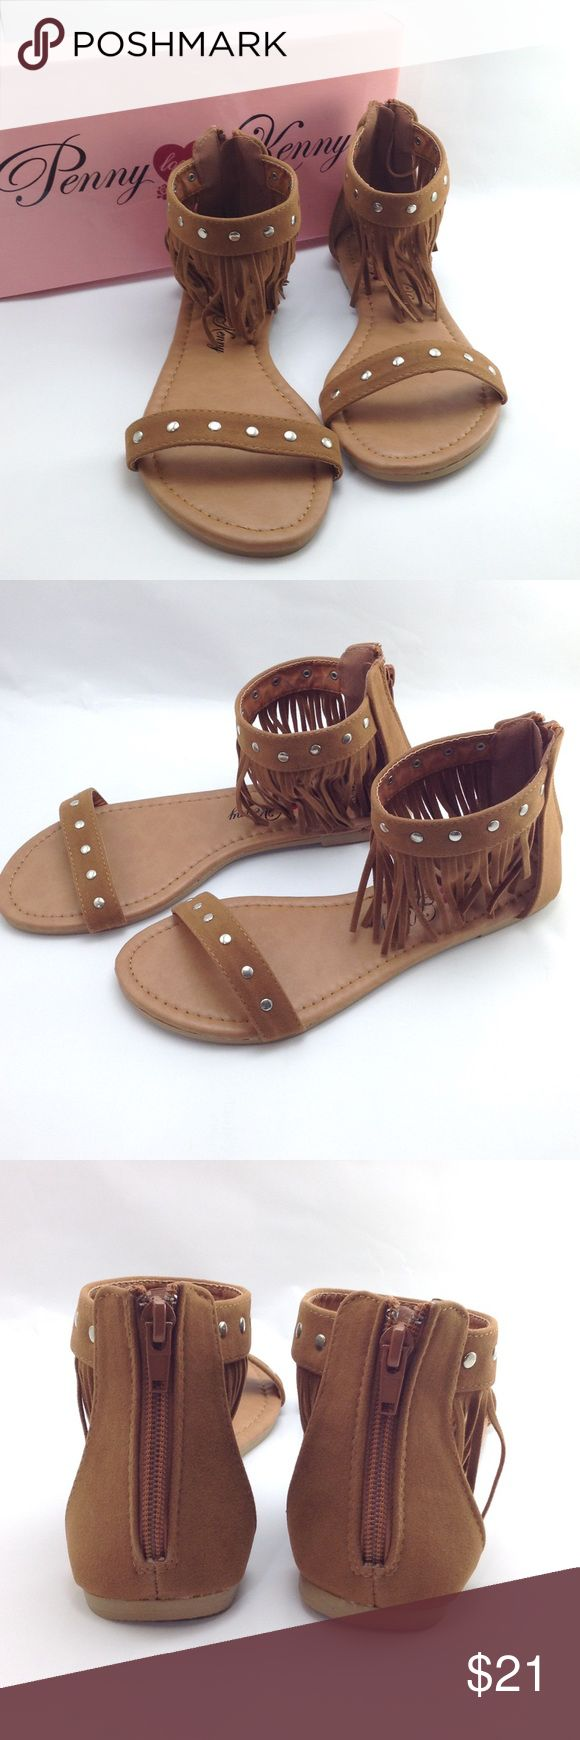 Penny ❤ Kenny fringed sandals So boho and cute! Faux leather upper s. Back zipper. Penny loves Kenny Shoes Sandals